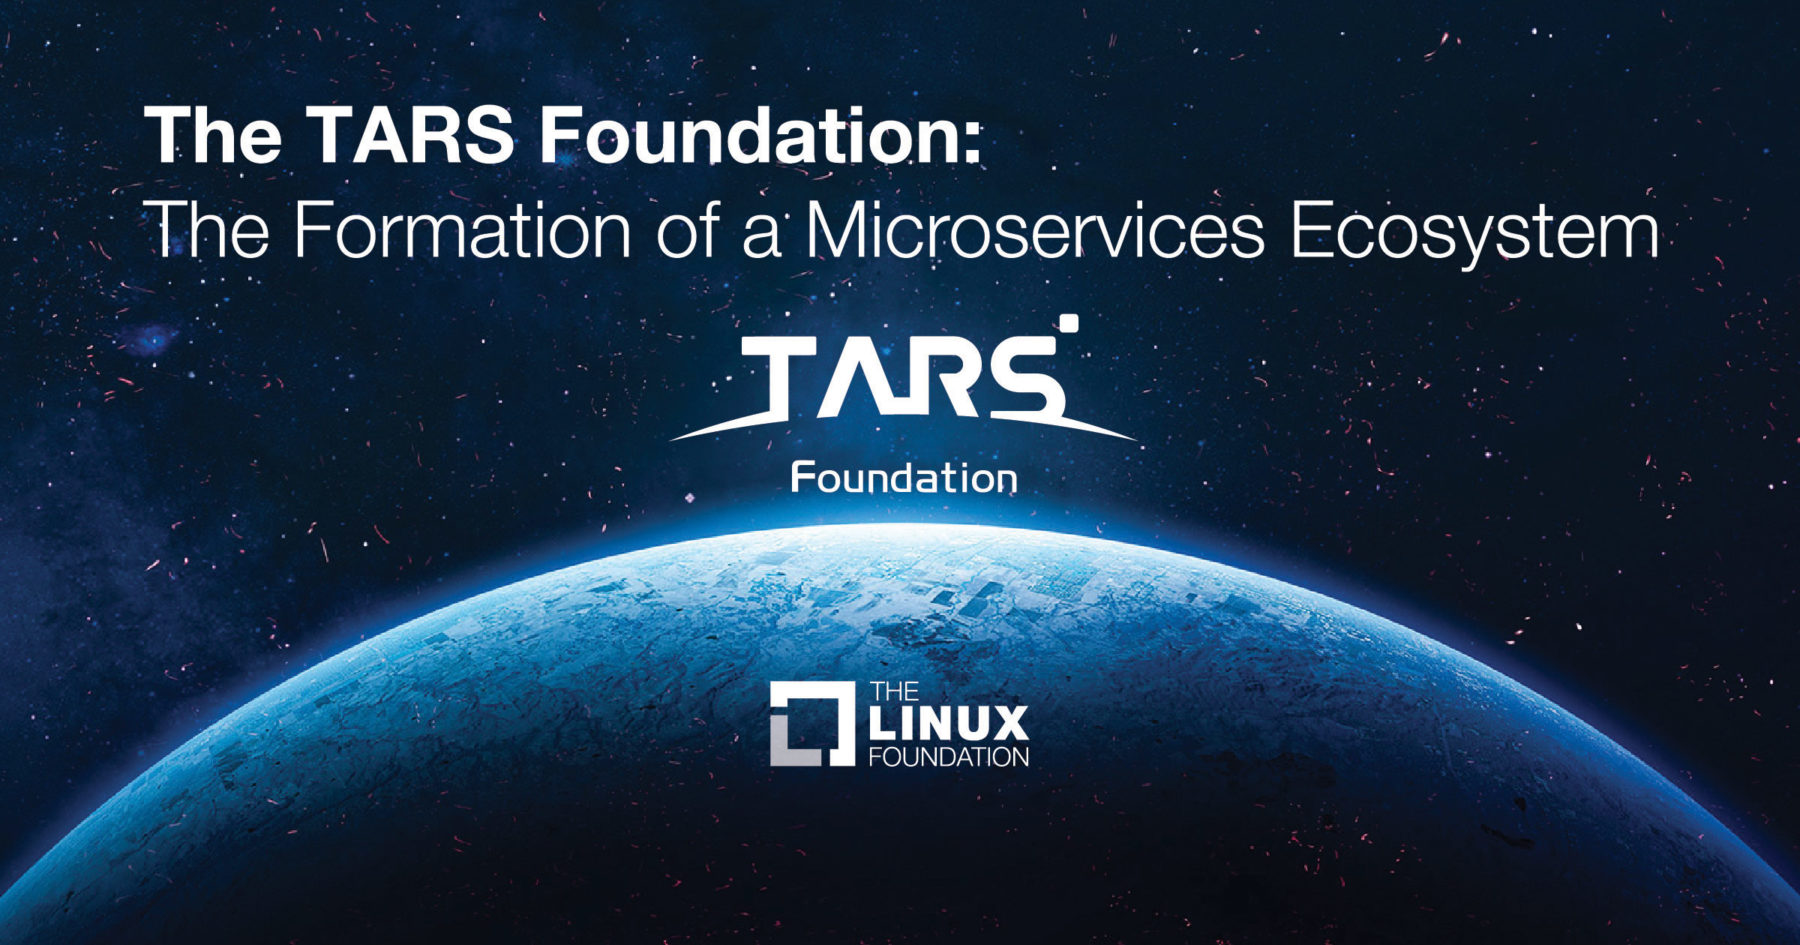 The TARS Foundation: The Formation of a Microservices Ecosystem